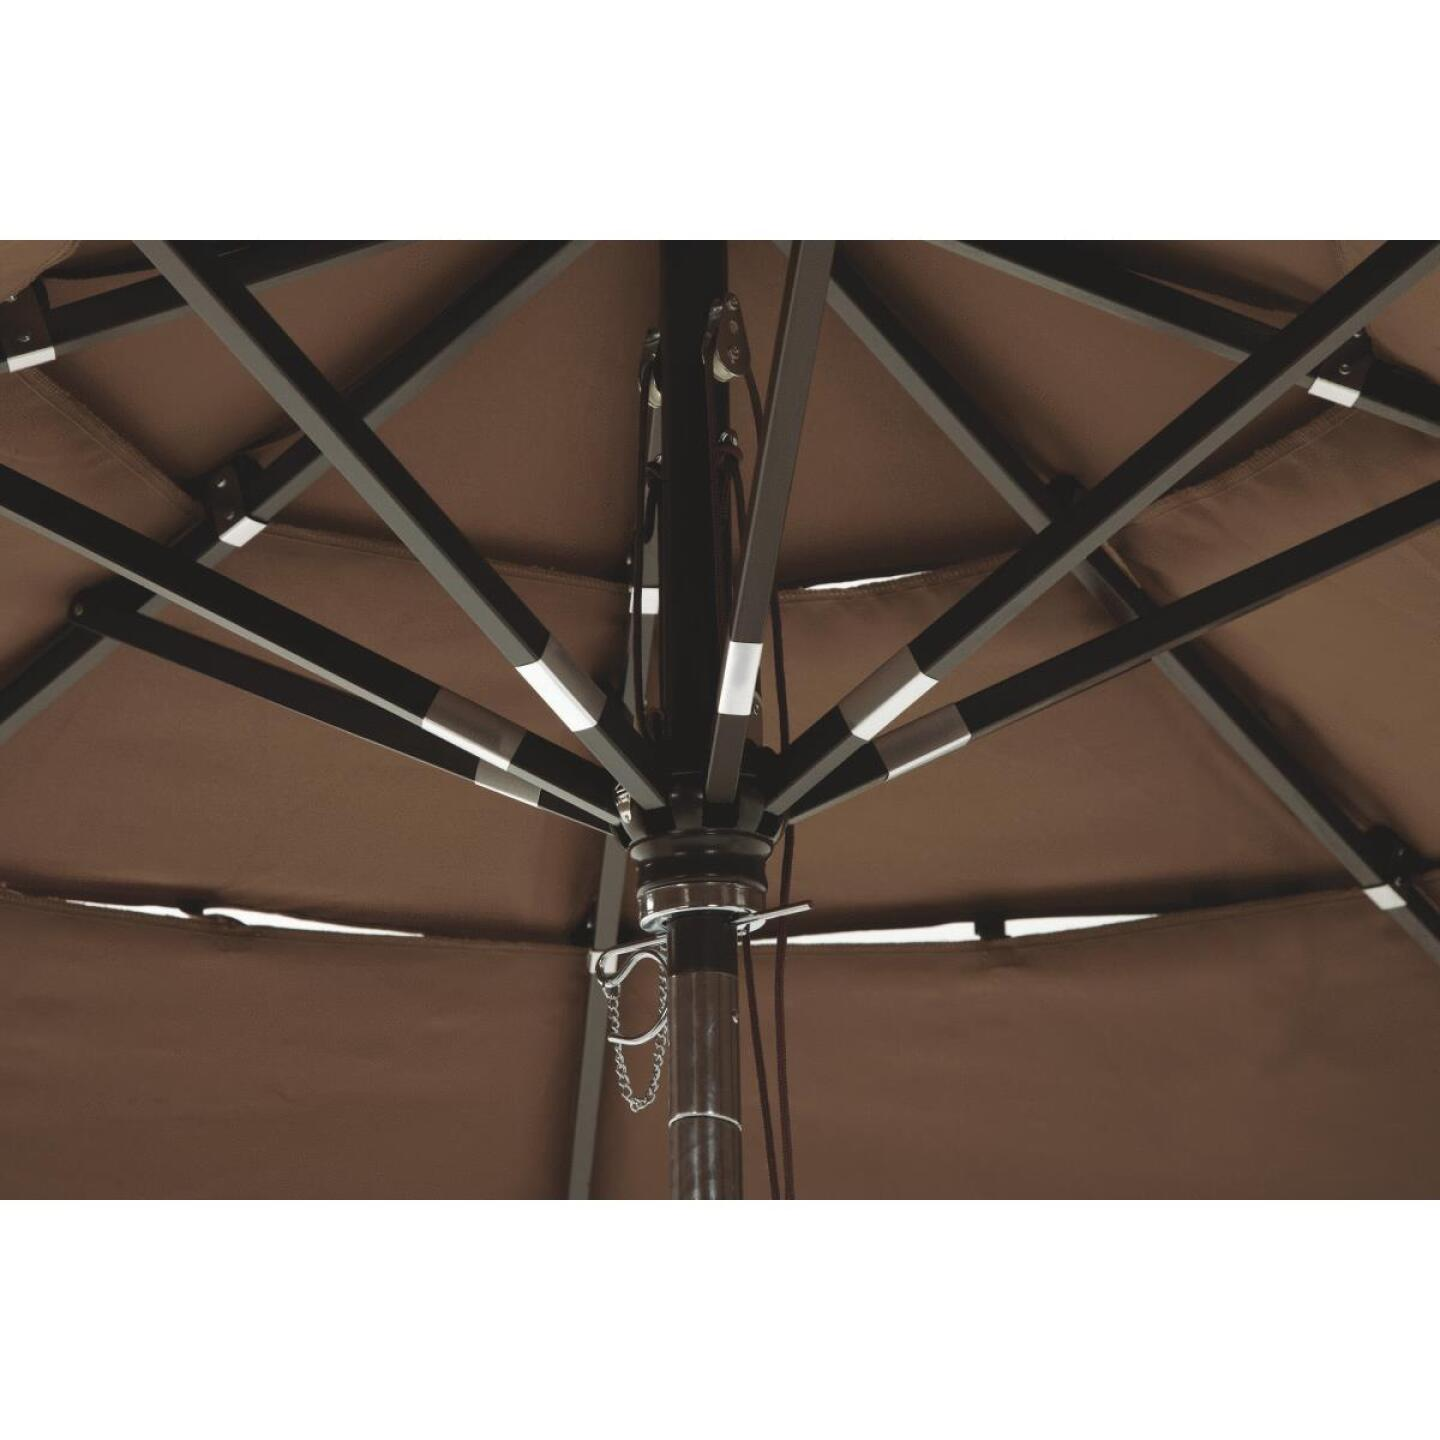 Outdoor Expressions 9 Ft. 3-Tier Tilt/Pulley Brown Patio Umbrella Image 5